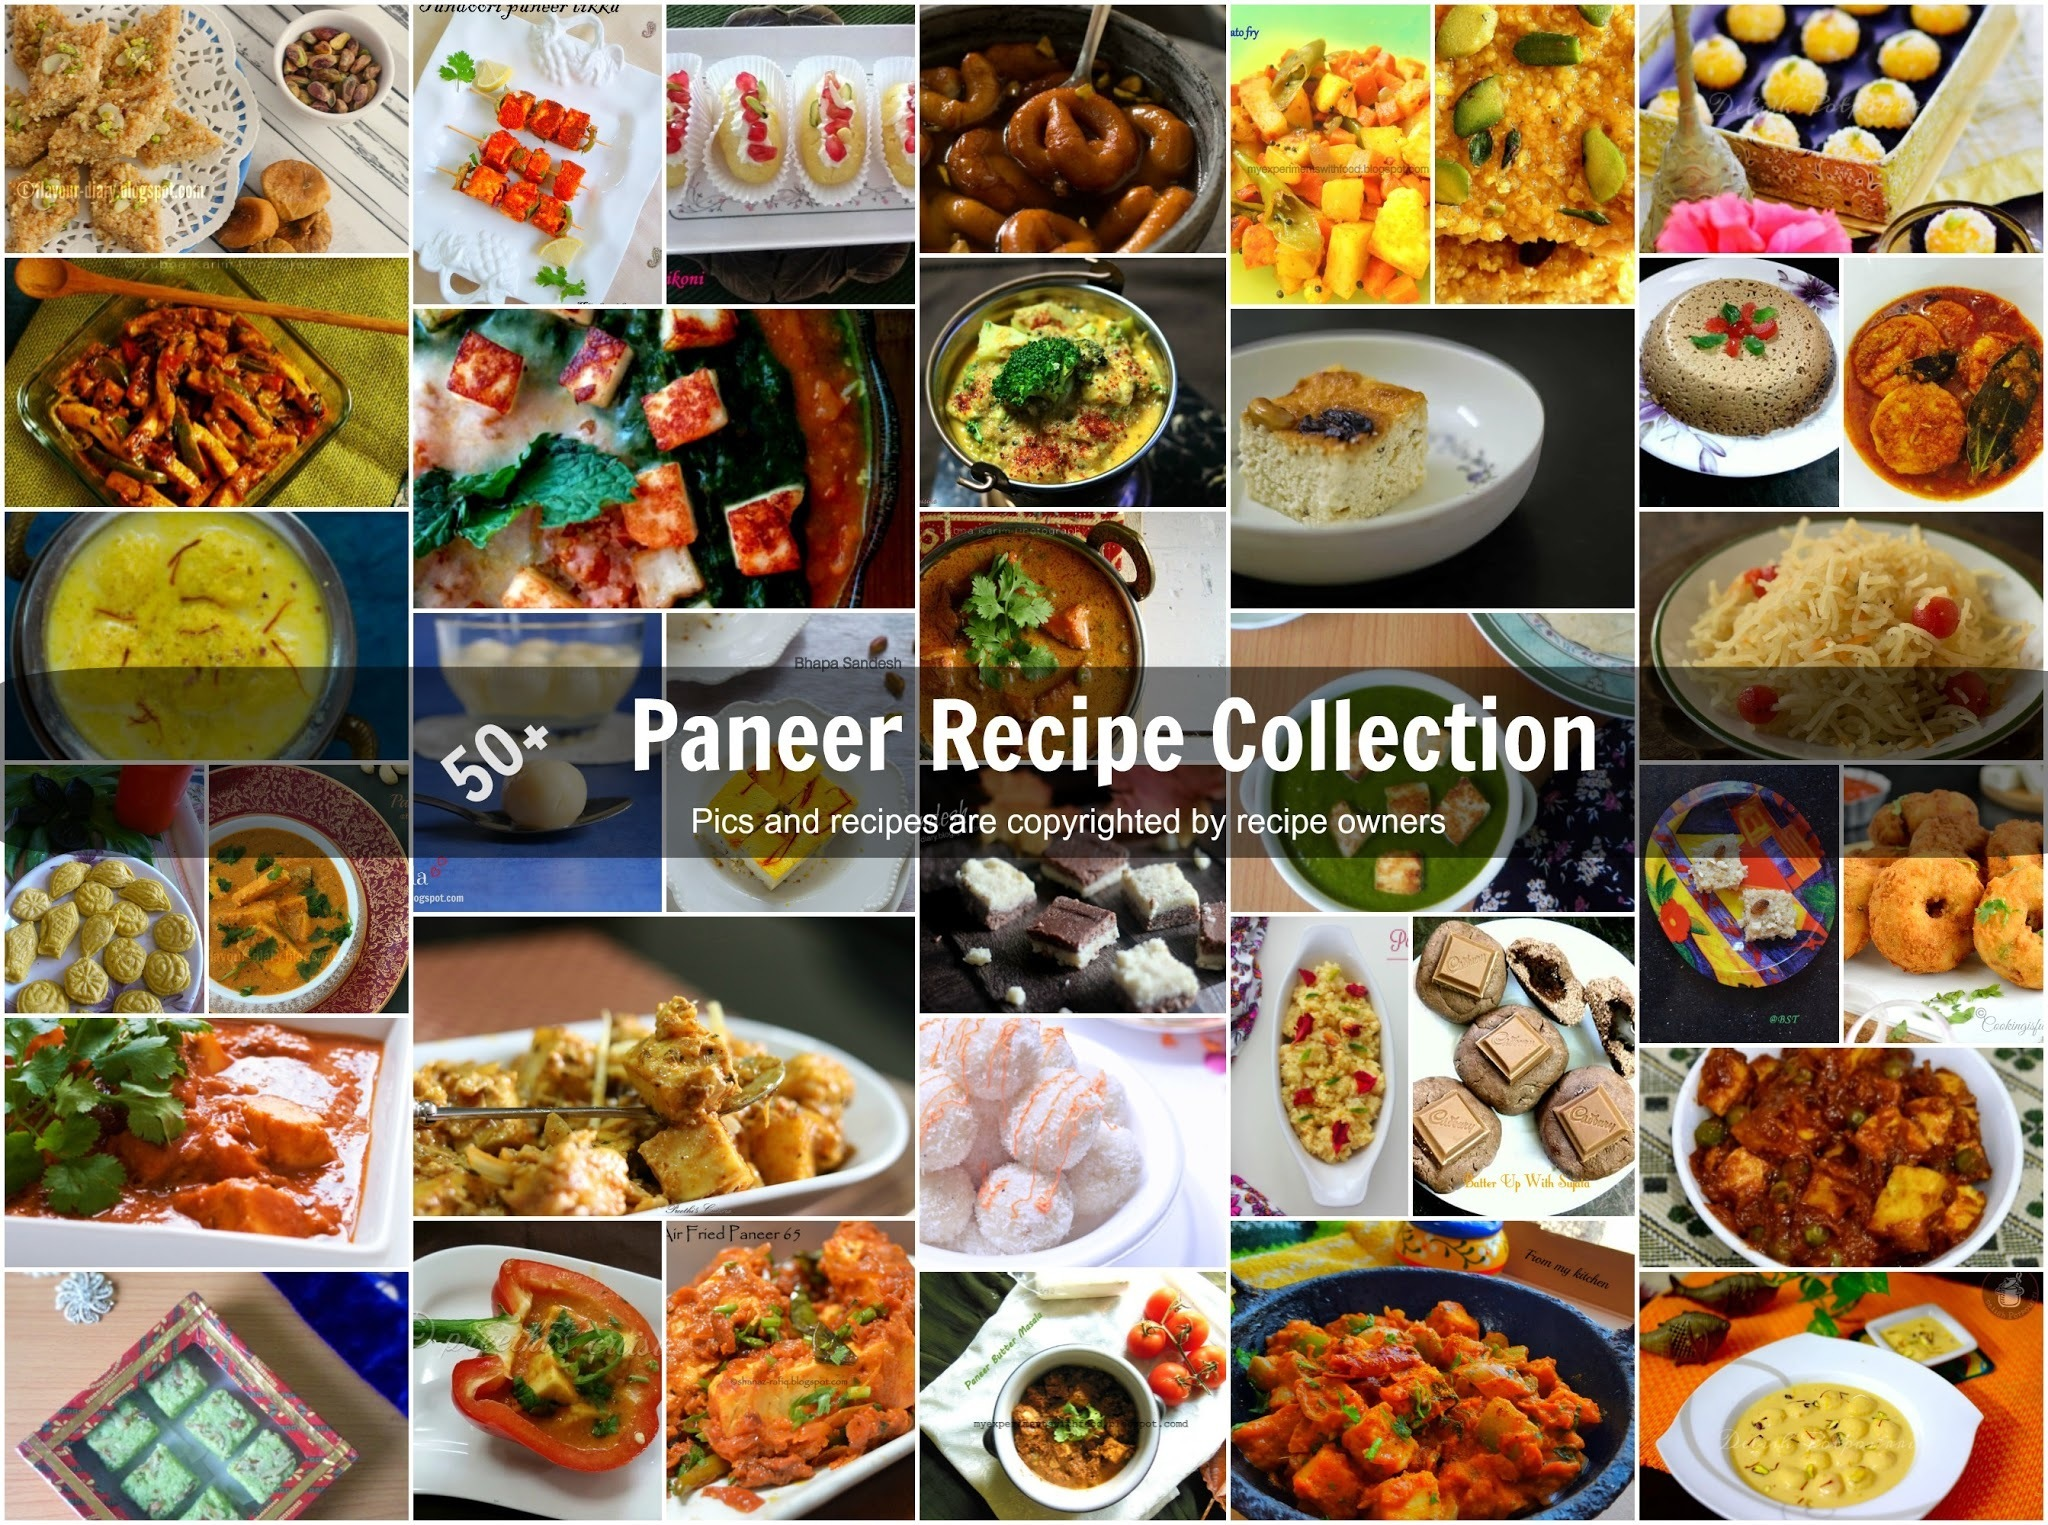 Paneer Recipes | Starter Curries and Dessert recipes | Indian Vegetarian Recipes